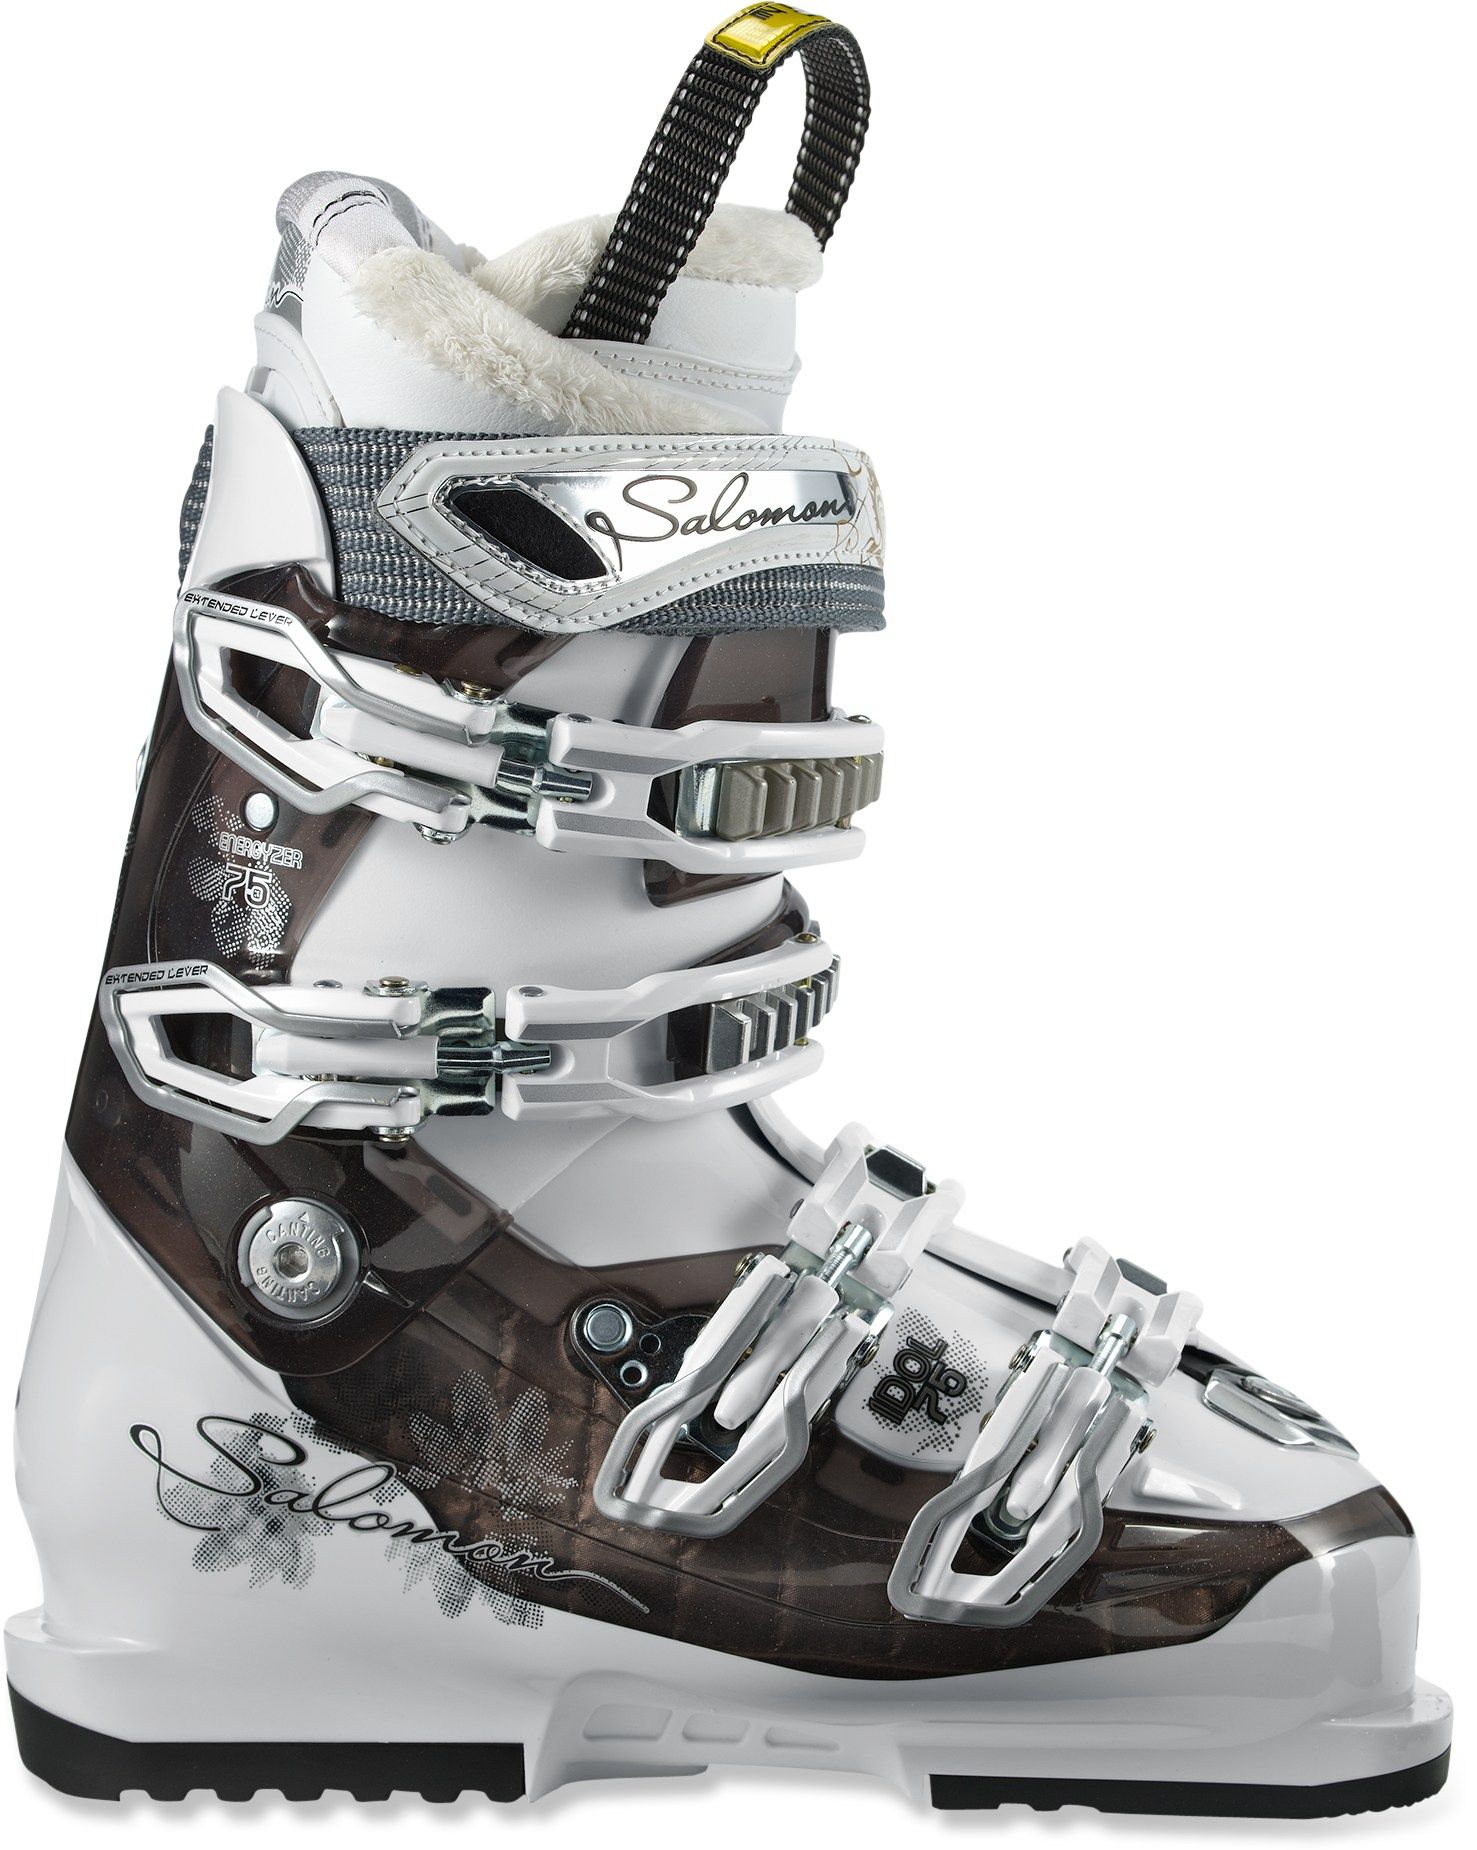 Salomon Idol 75 Ski Boots Women's 20122013 | REI Co op